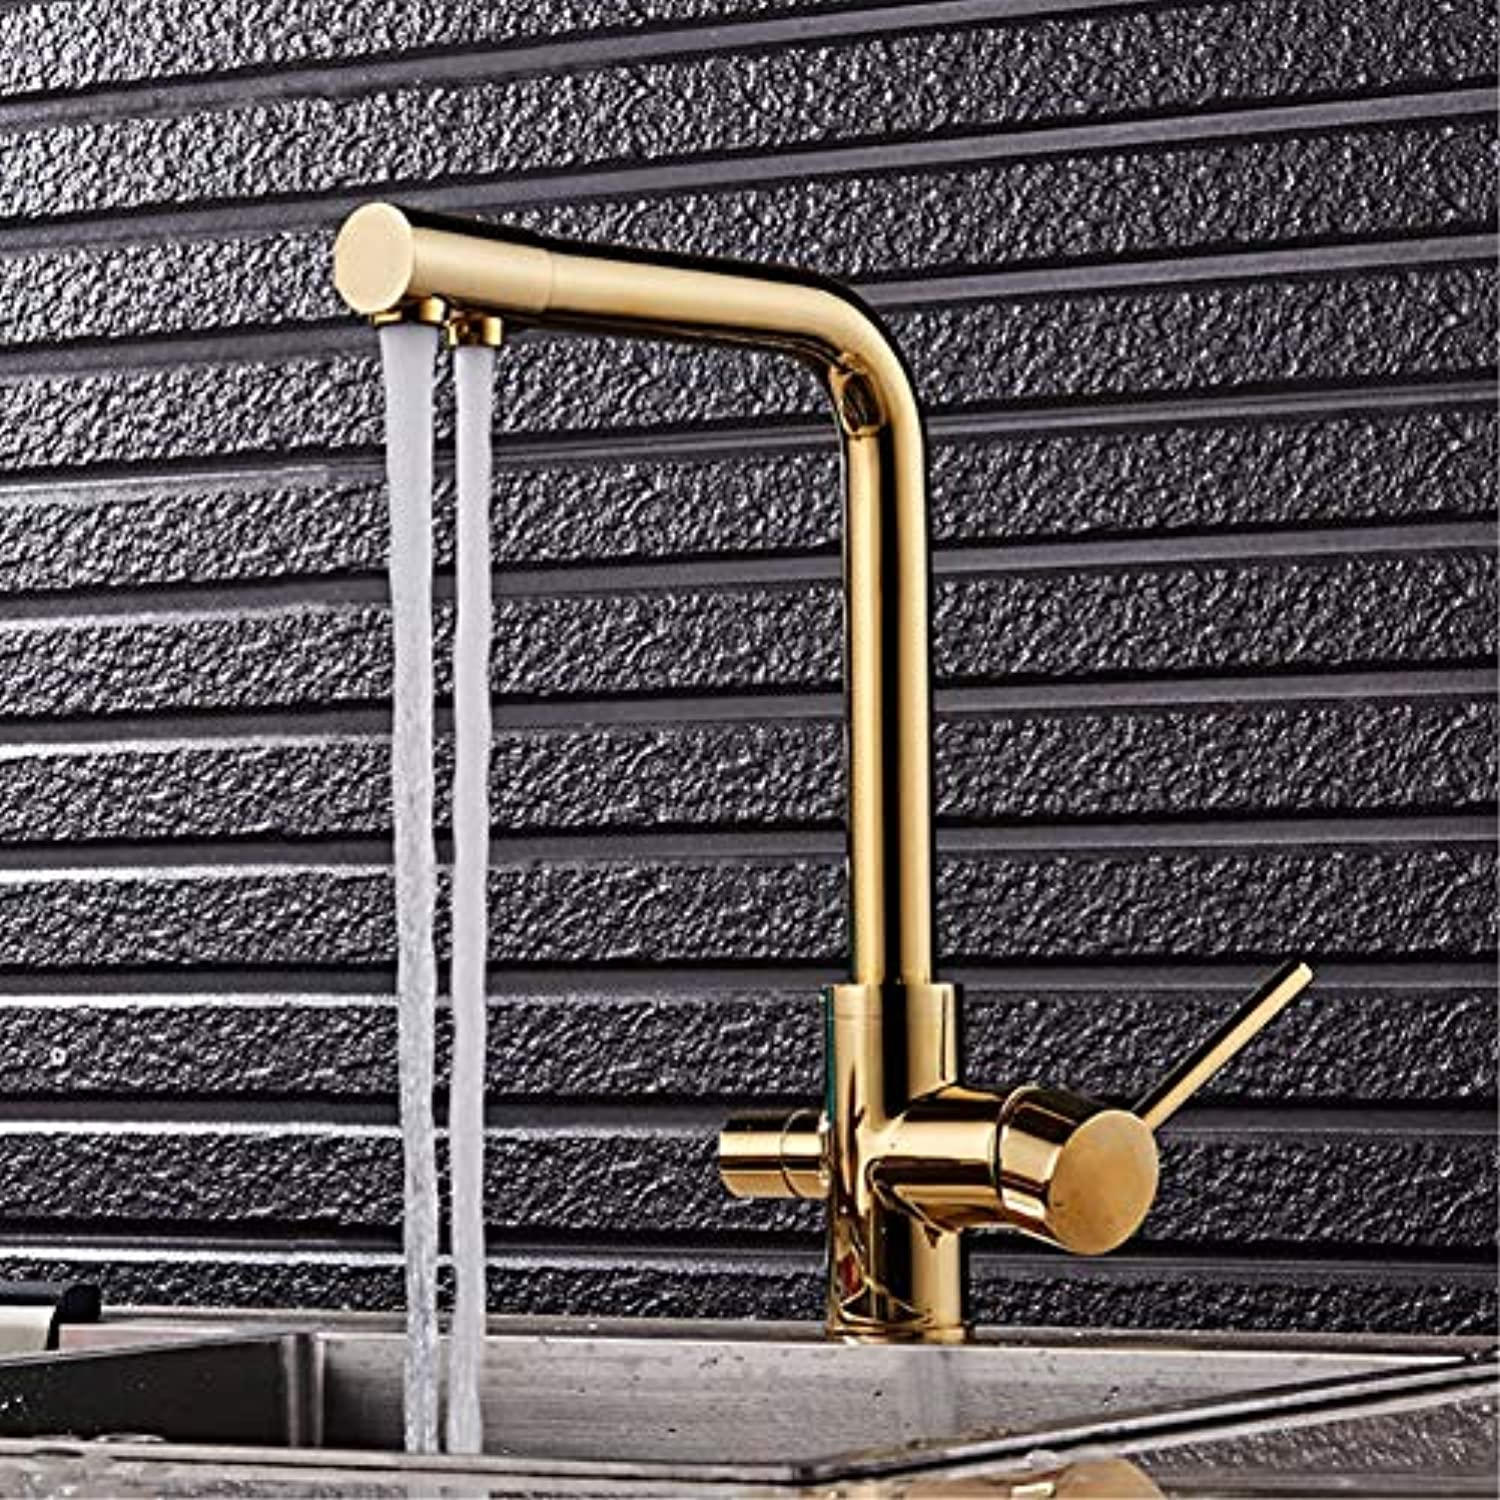 Faucet gold Black Kitchen Faucet Solid Brass for Kitchen Deck Mounted Water Filter Tap Three Ways Sink Mixer 3 Way Kitchen Faucet